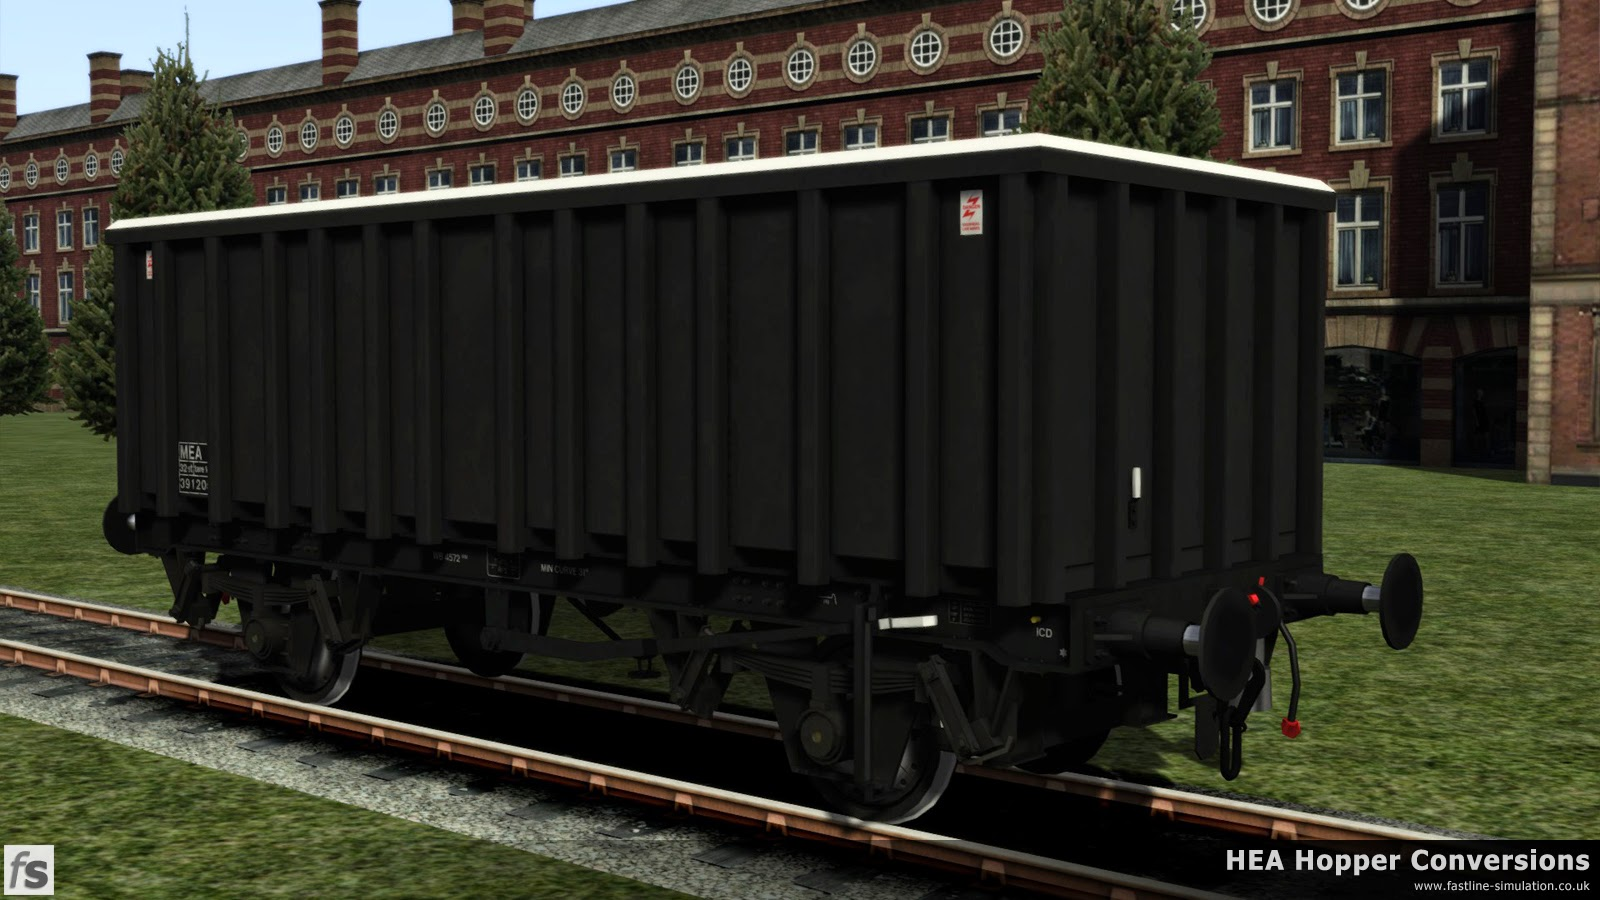 Fastline Simulation - HEA Conversions: Loadhaul followed Transrail in ordering a batch of MEA conversions. By the time the wagons were delivered Loadhaul had become a part of EWS and the wagons were delivered in plain black livery without the trademark Loadhaul orange ends and a white band around the top. End ladders were again not fitted to these wagons.